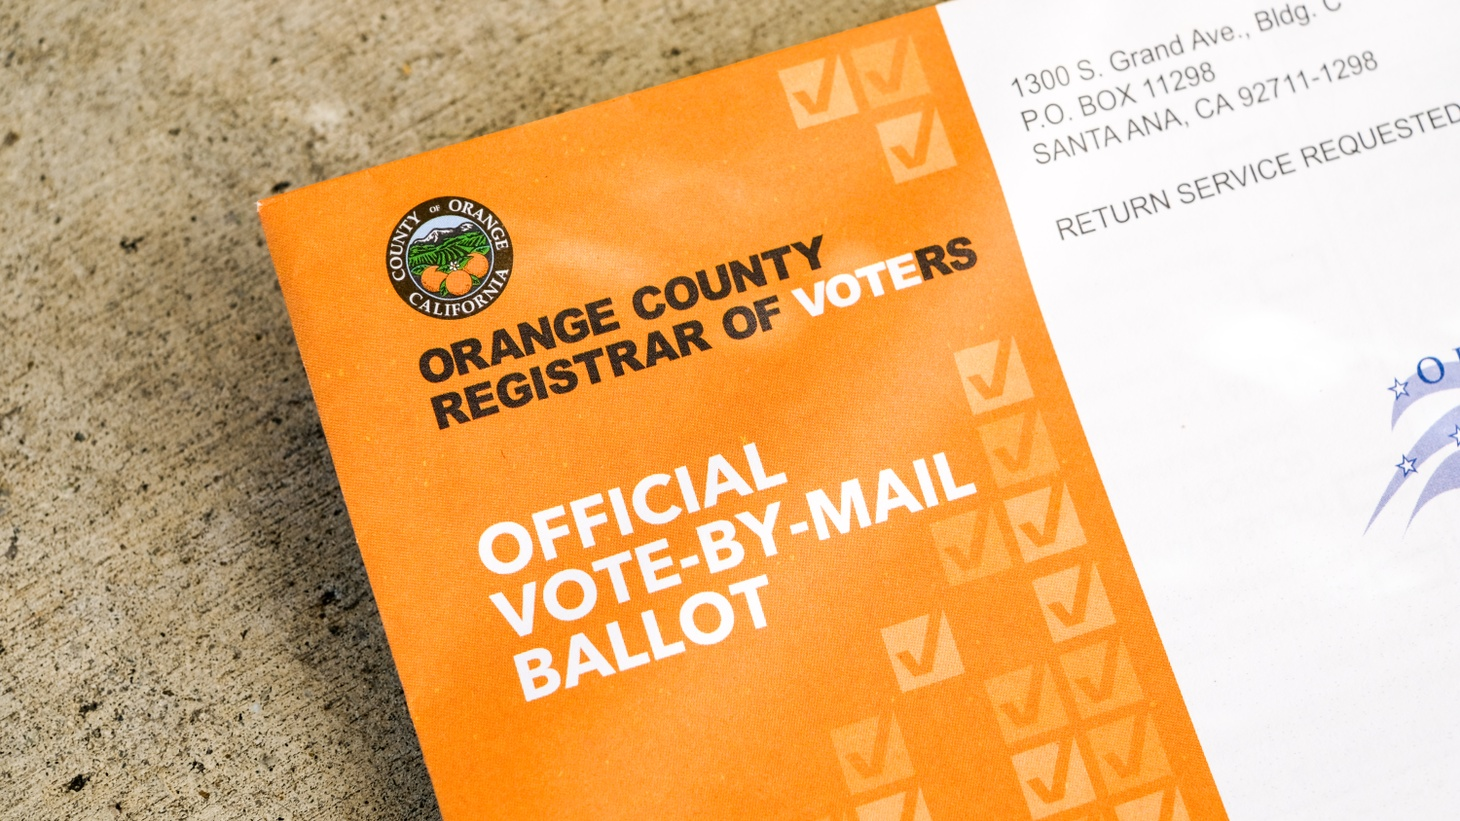 California voters can send off their ballots by using ballot drop boxes. But dozens of unofficial boxes have popped up statewide, including in Orange and LA counties.